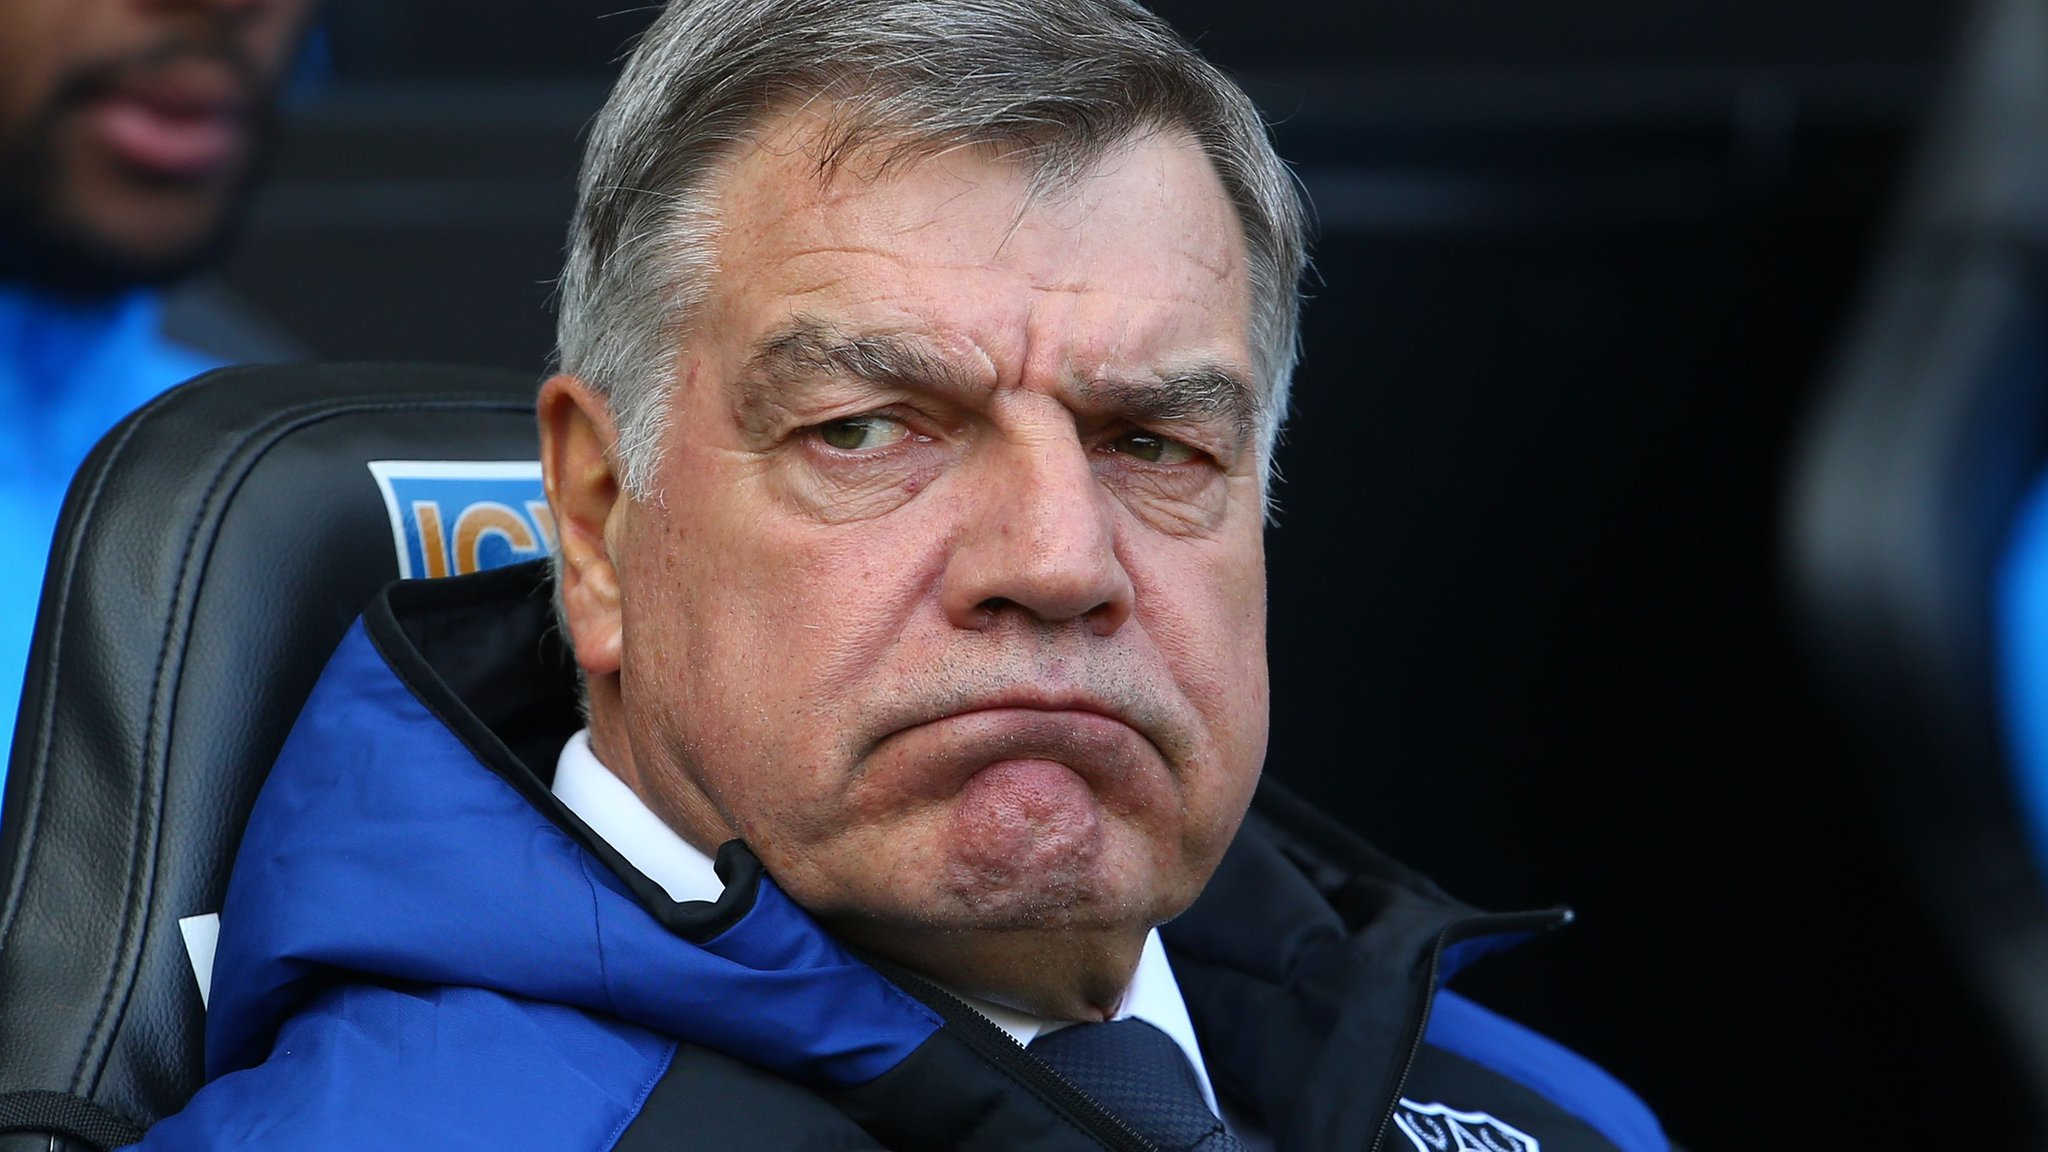 Sam Allardyce: Everton manager sacked after six months in charge